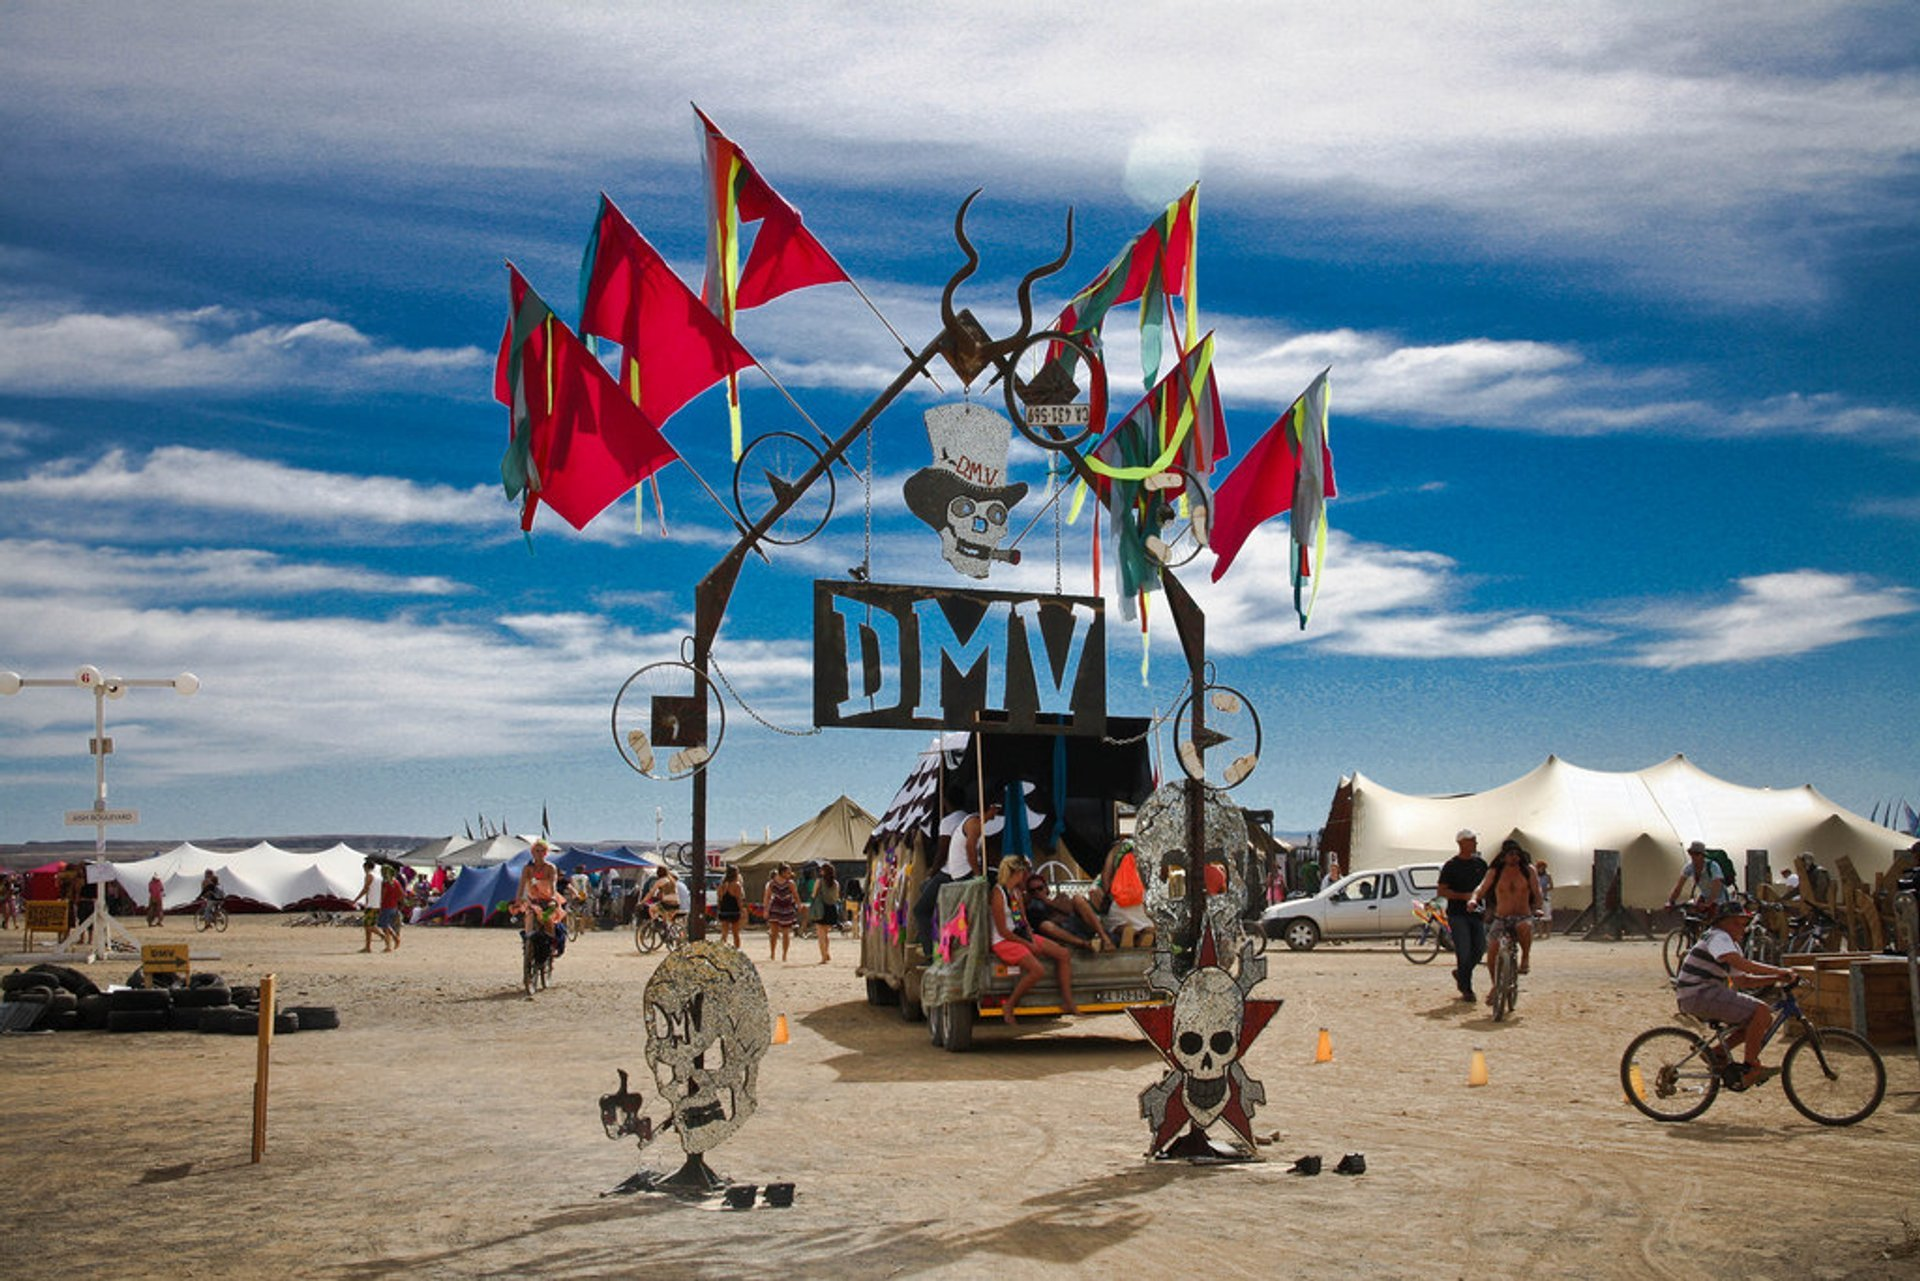 Best time to see AfrikaBurn in Cape Town 2020